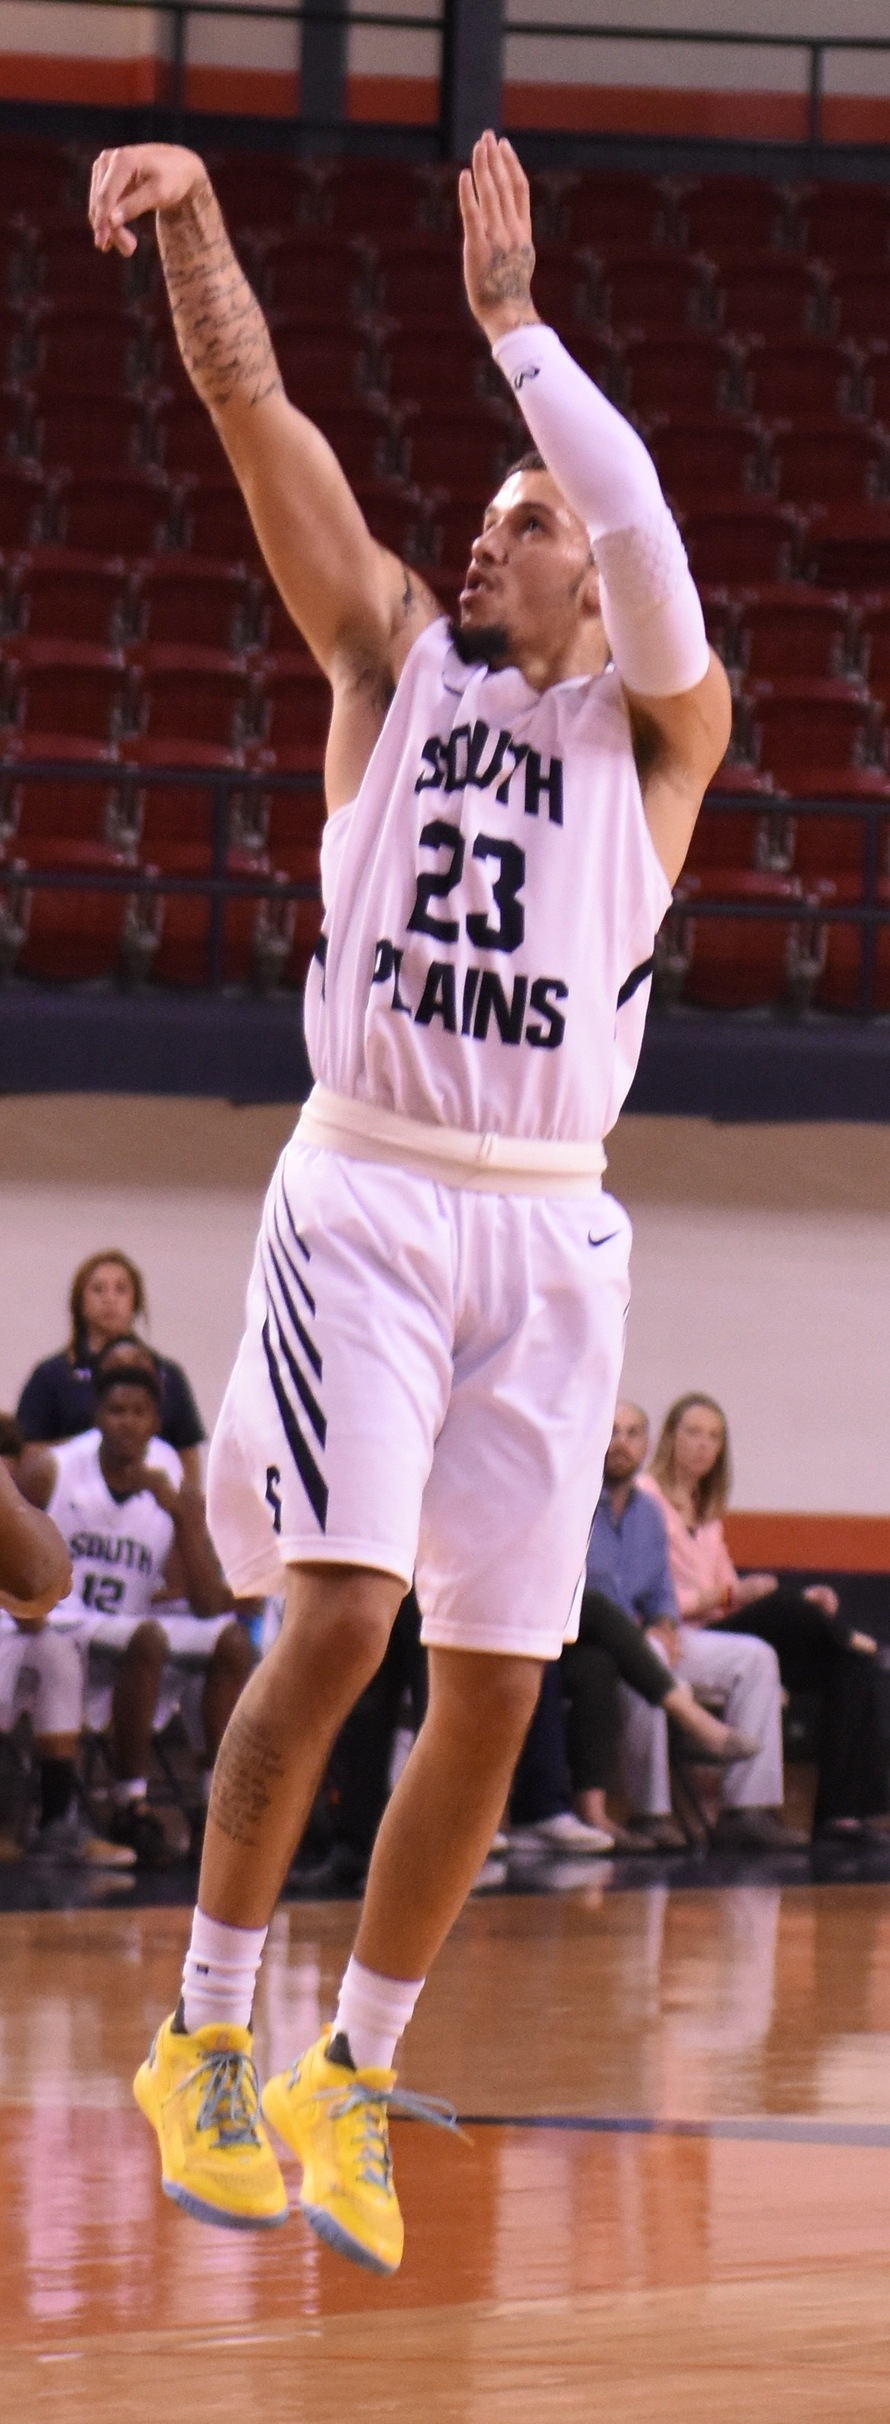 Brangers' career-high 38 points leads Texans past NMMI 108-69 Thursday night